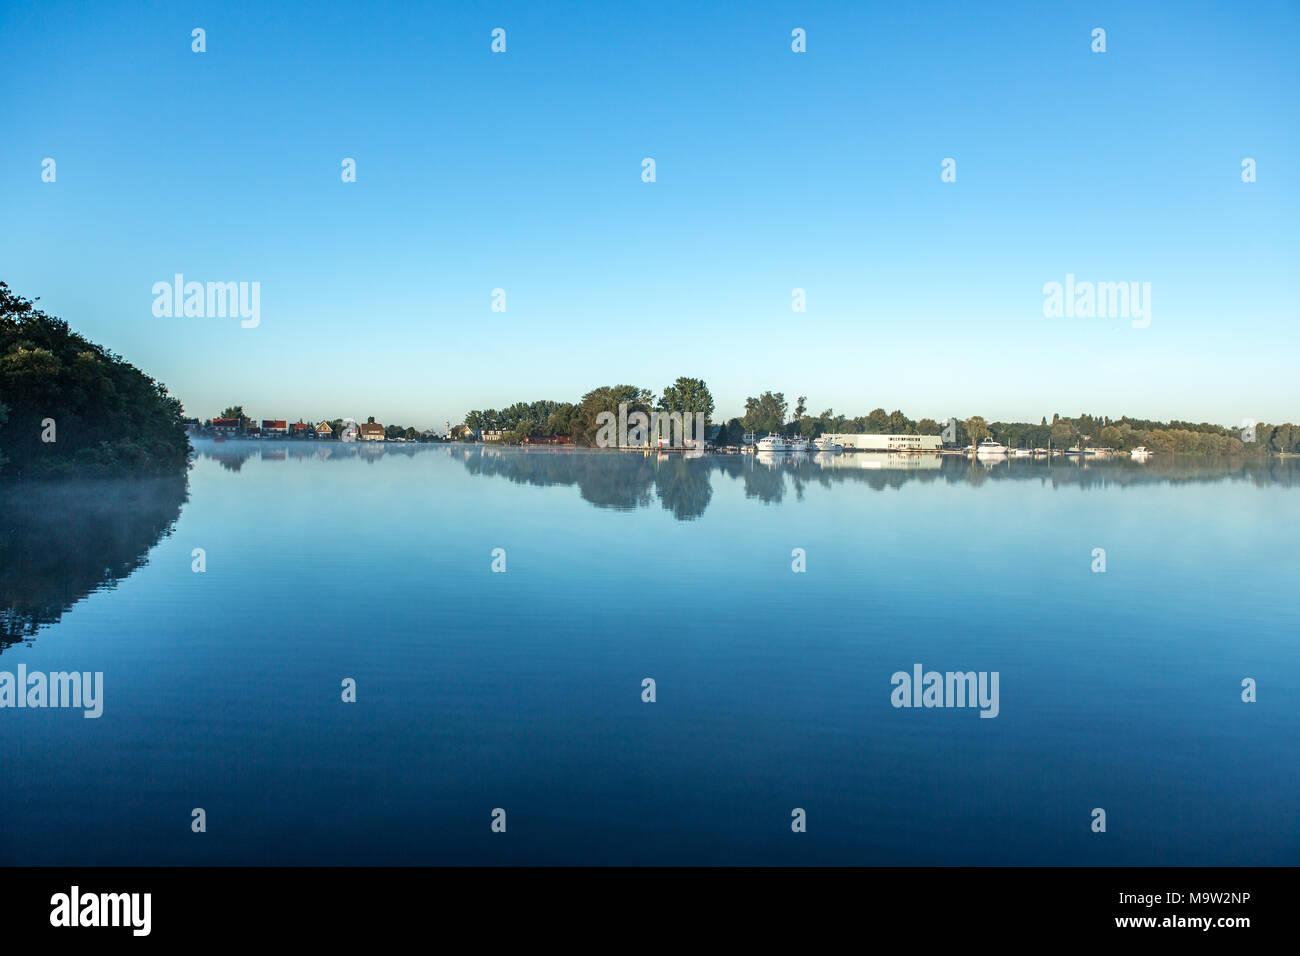 Reflection of a harbour in te water over the citylake 'the Nieuwe Meer' in Amsterdam the Netherlands. - Stock Image